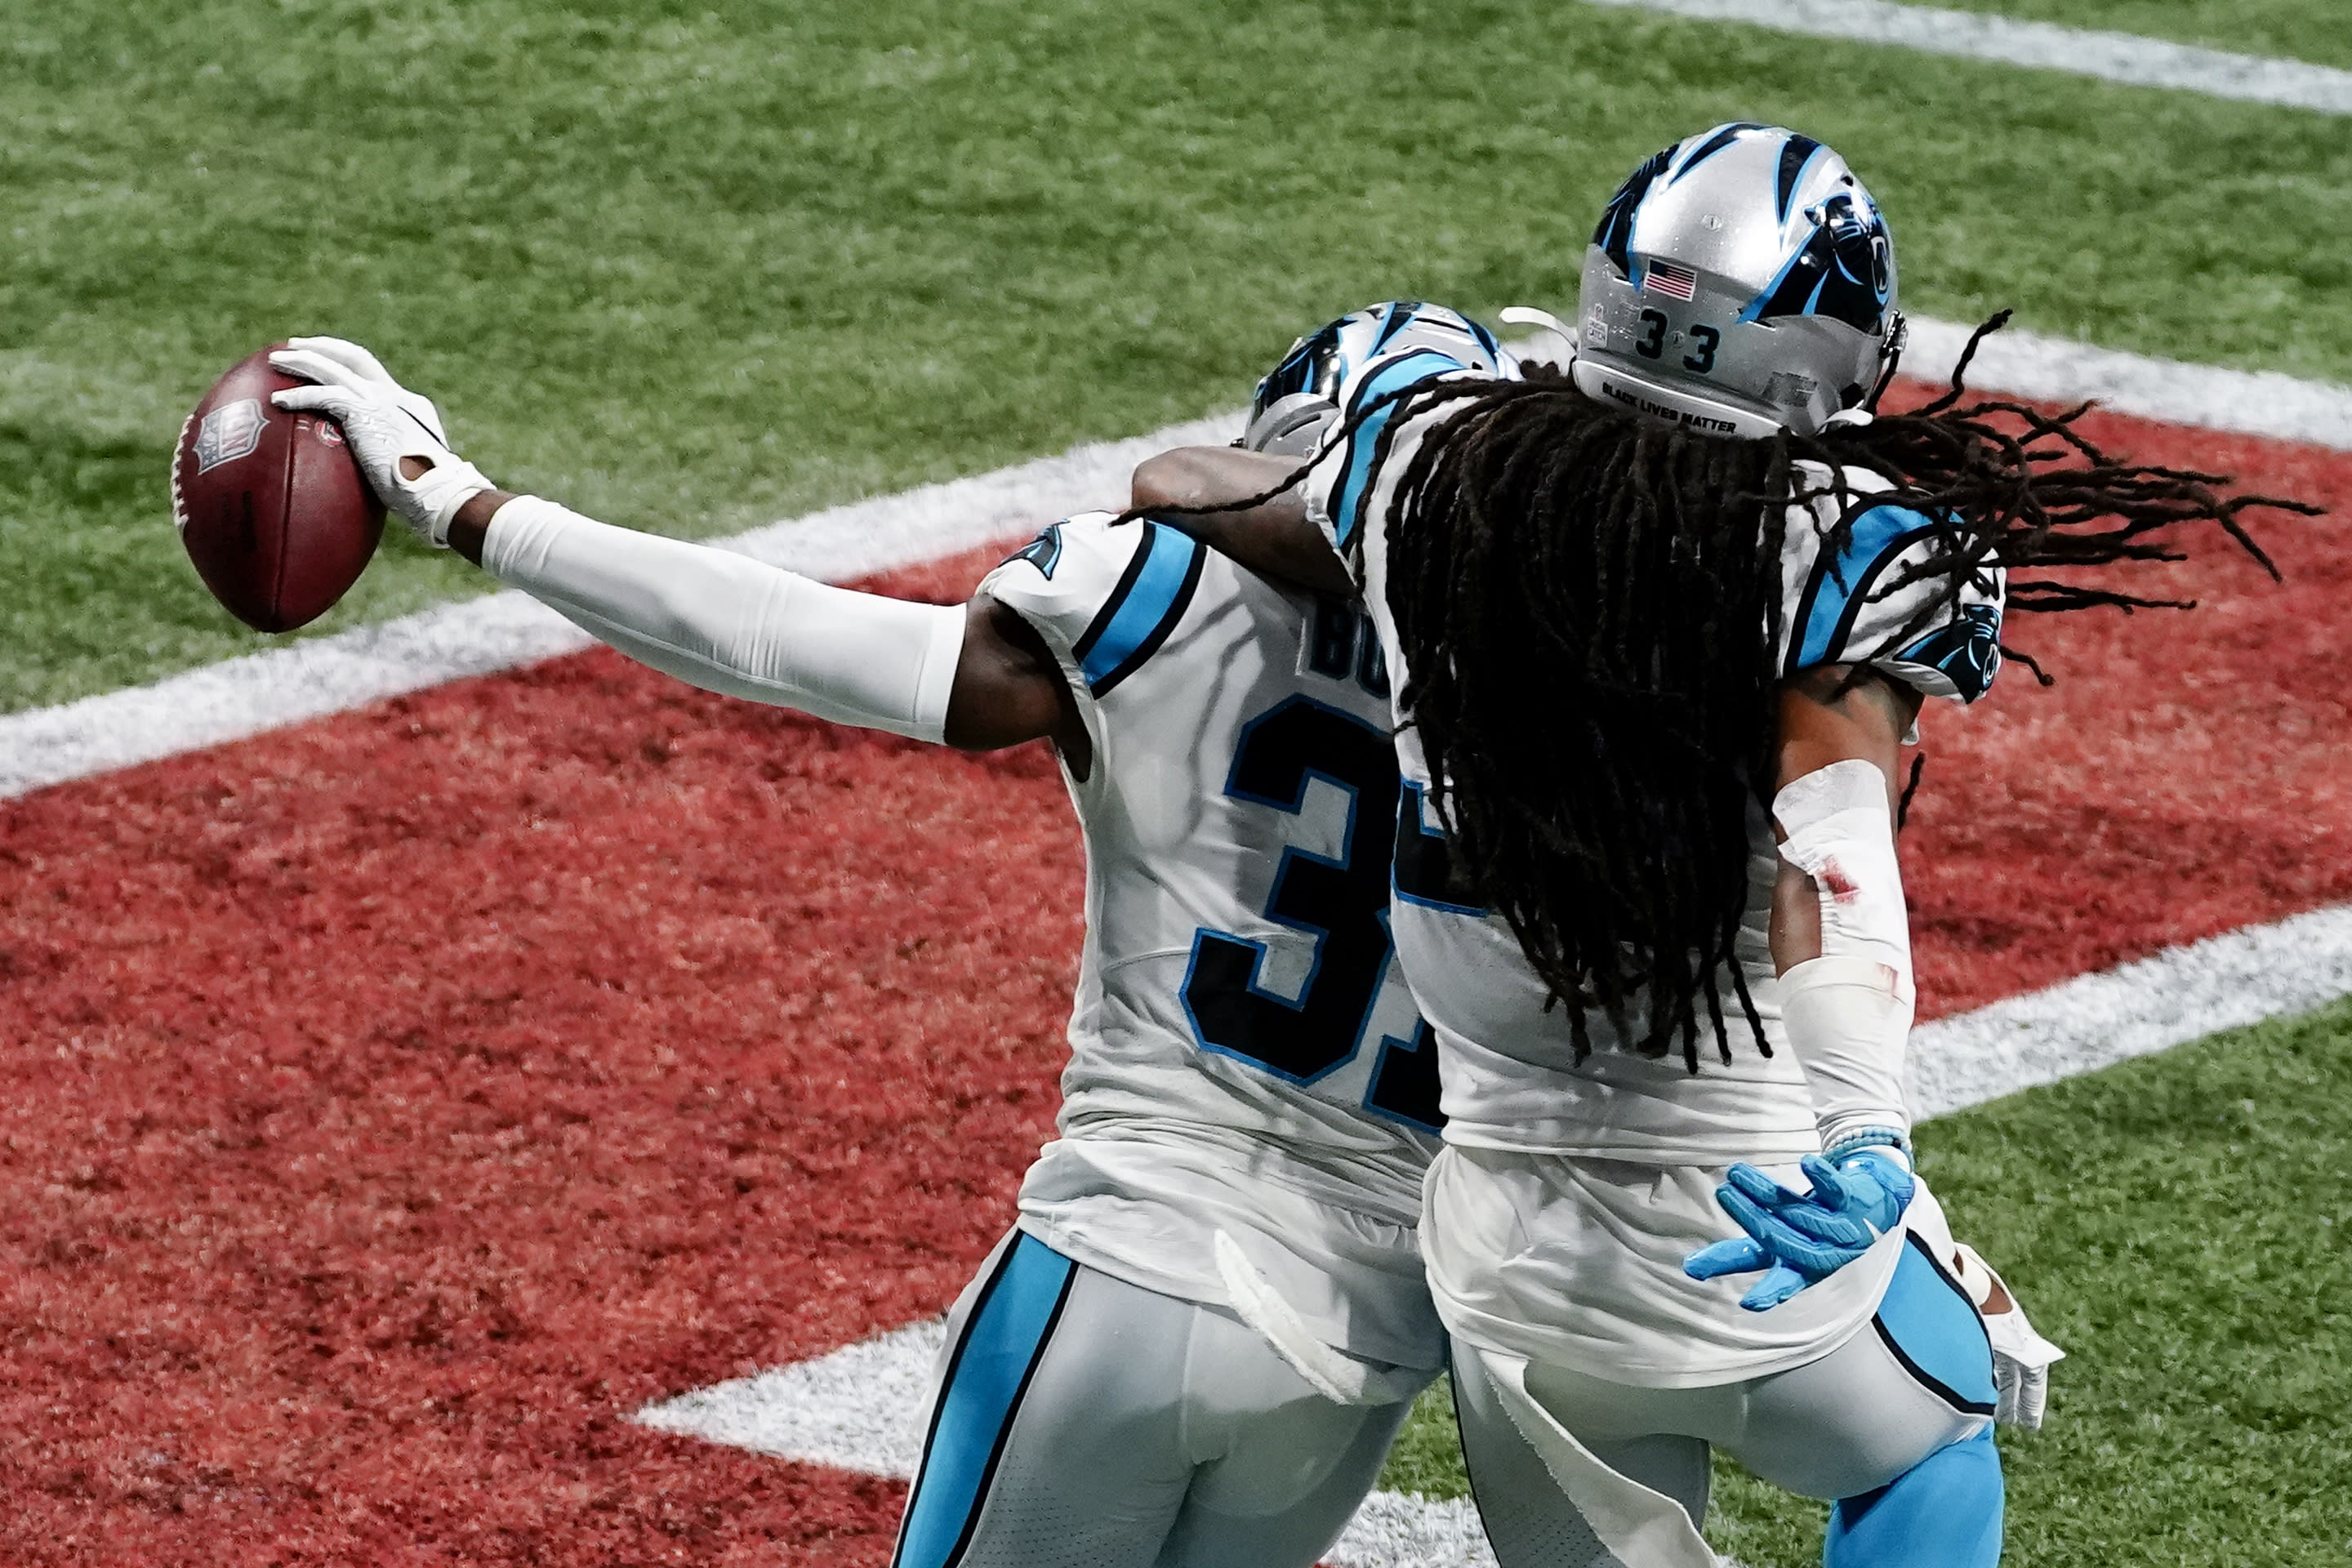 Carolina Panthers strong safety Juston Burris (31) celebrates his interception with Carolina Panthers free safety Tre Boston (33) during the second half of an NFL football game against the Atlanta Falcons, Sunday, Oct. 11, 2020, in Atlanta. (AP Photo/Brynn Anderson)